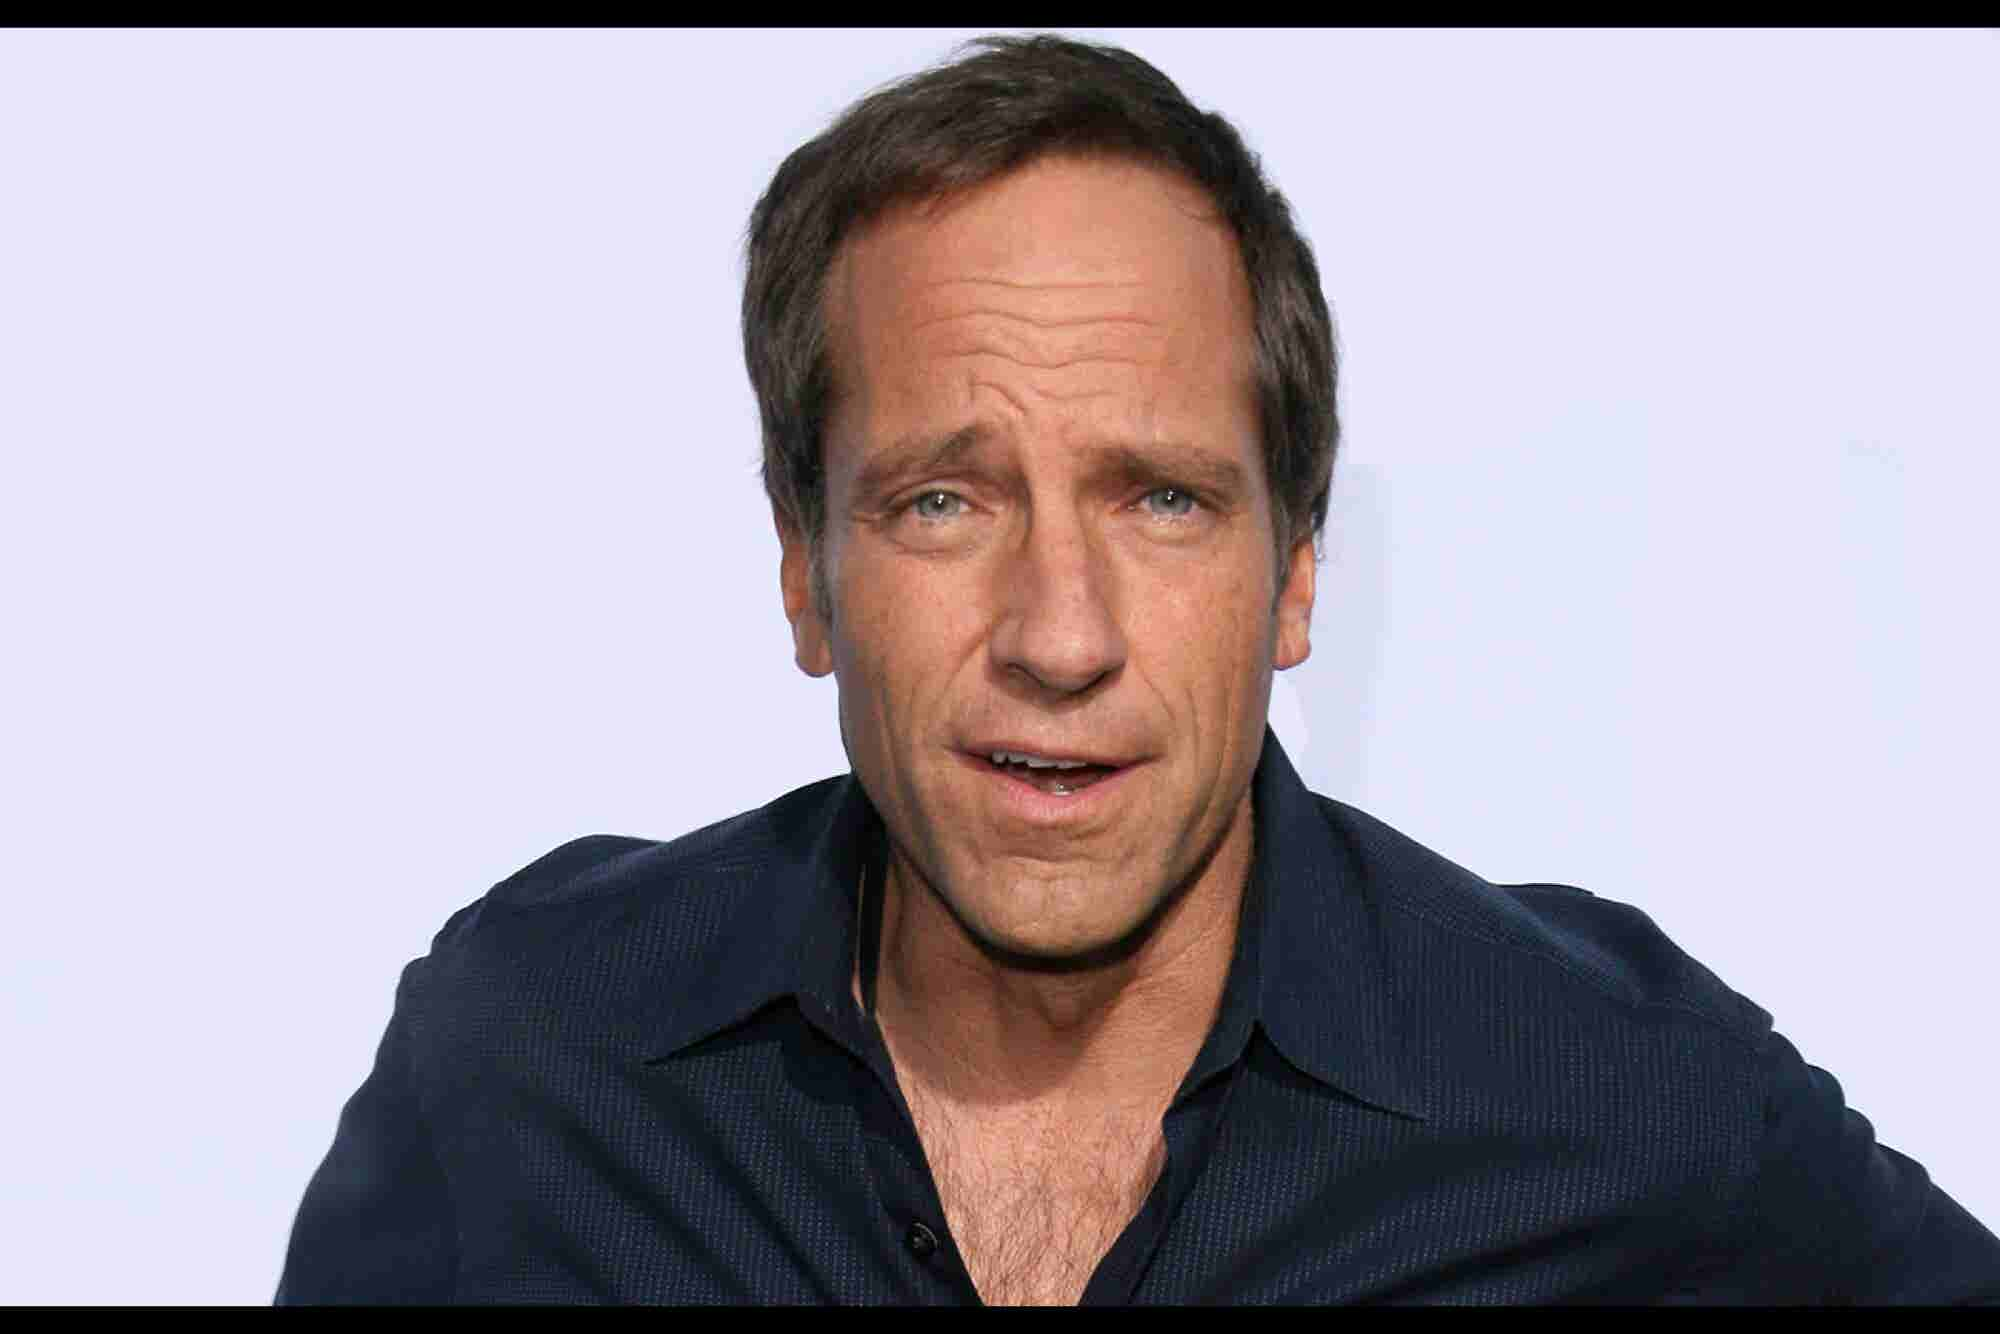 Mike Rowe: Don't Pursue Your Passion. Chase Opportunity.